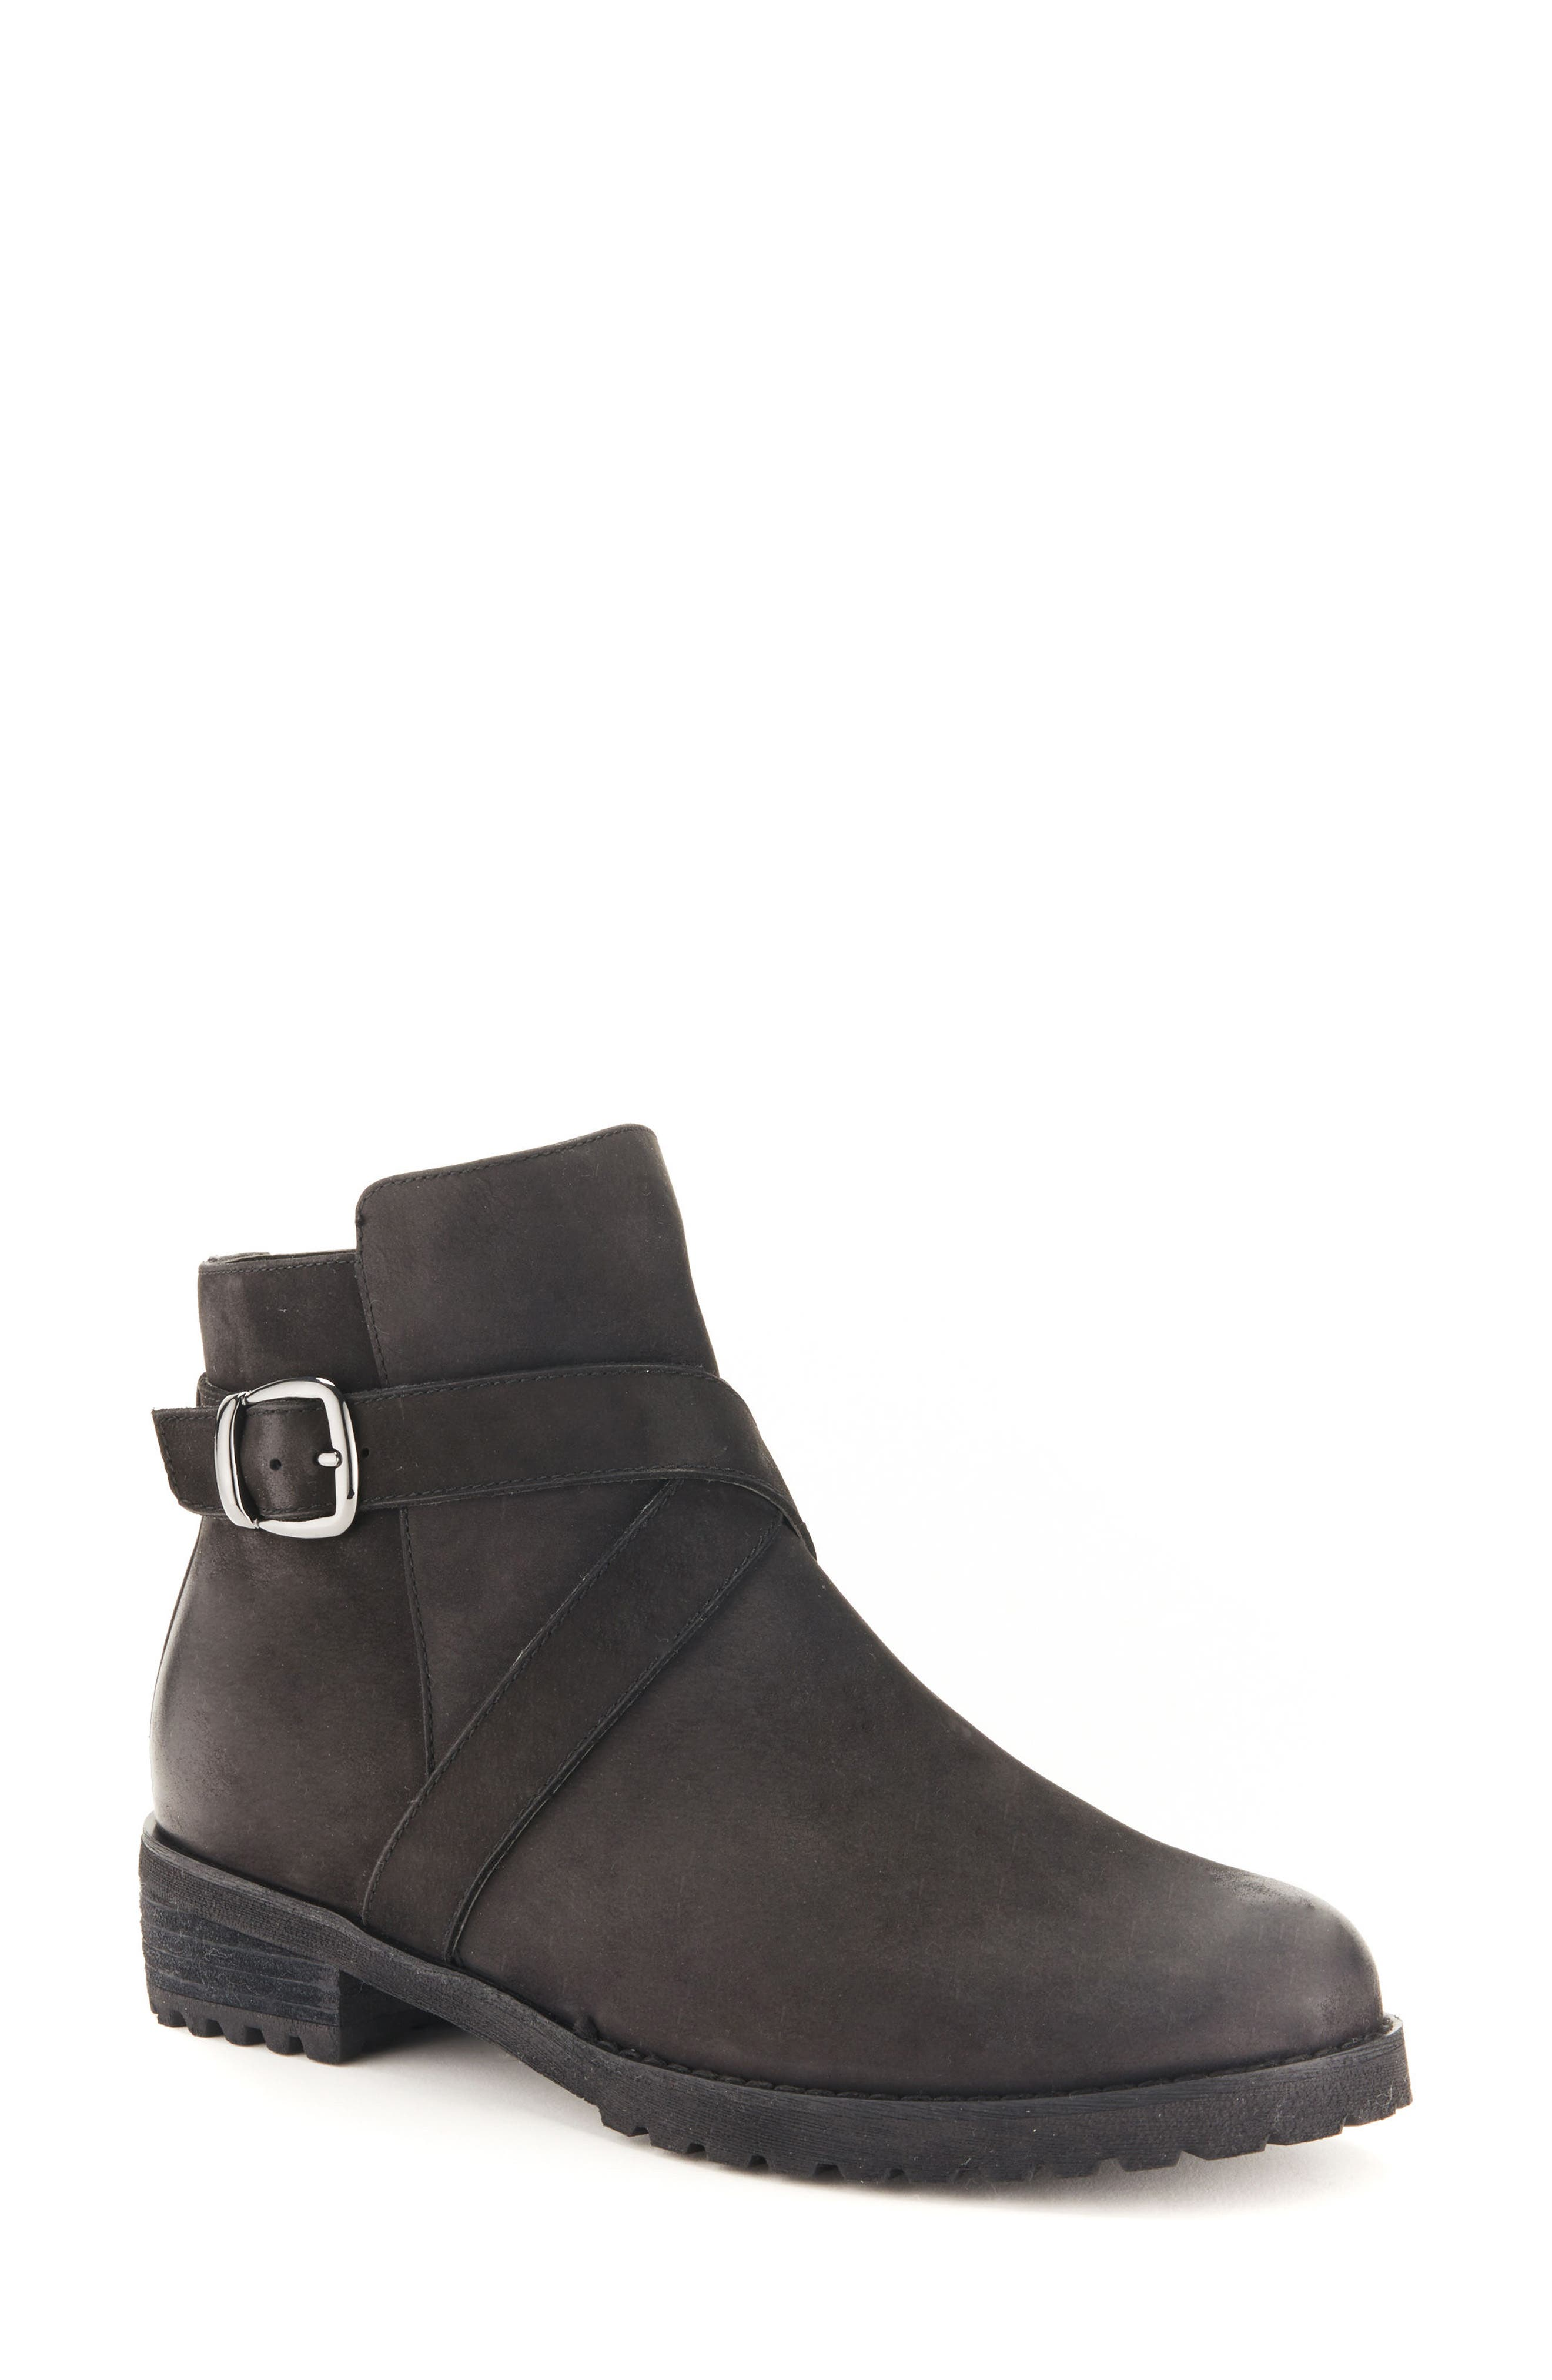 Blondo Varta Waterproof Bootie (Women)